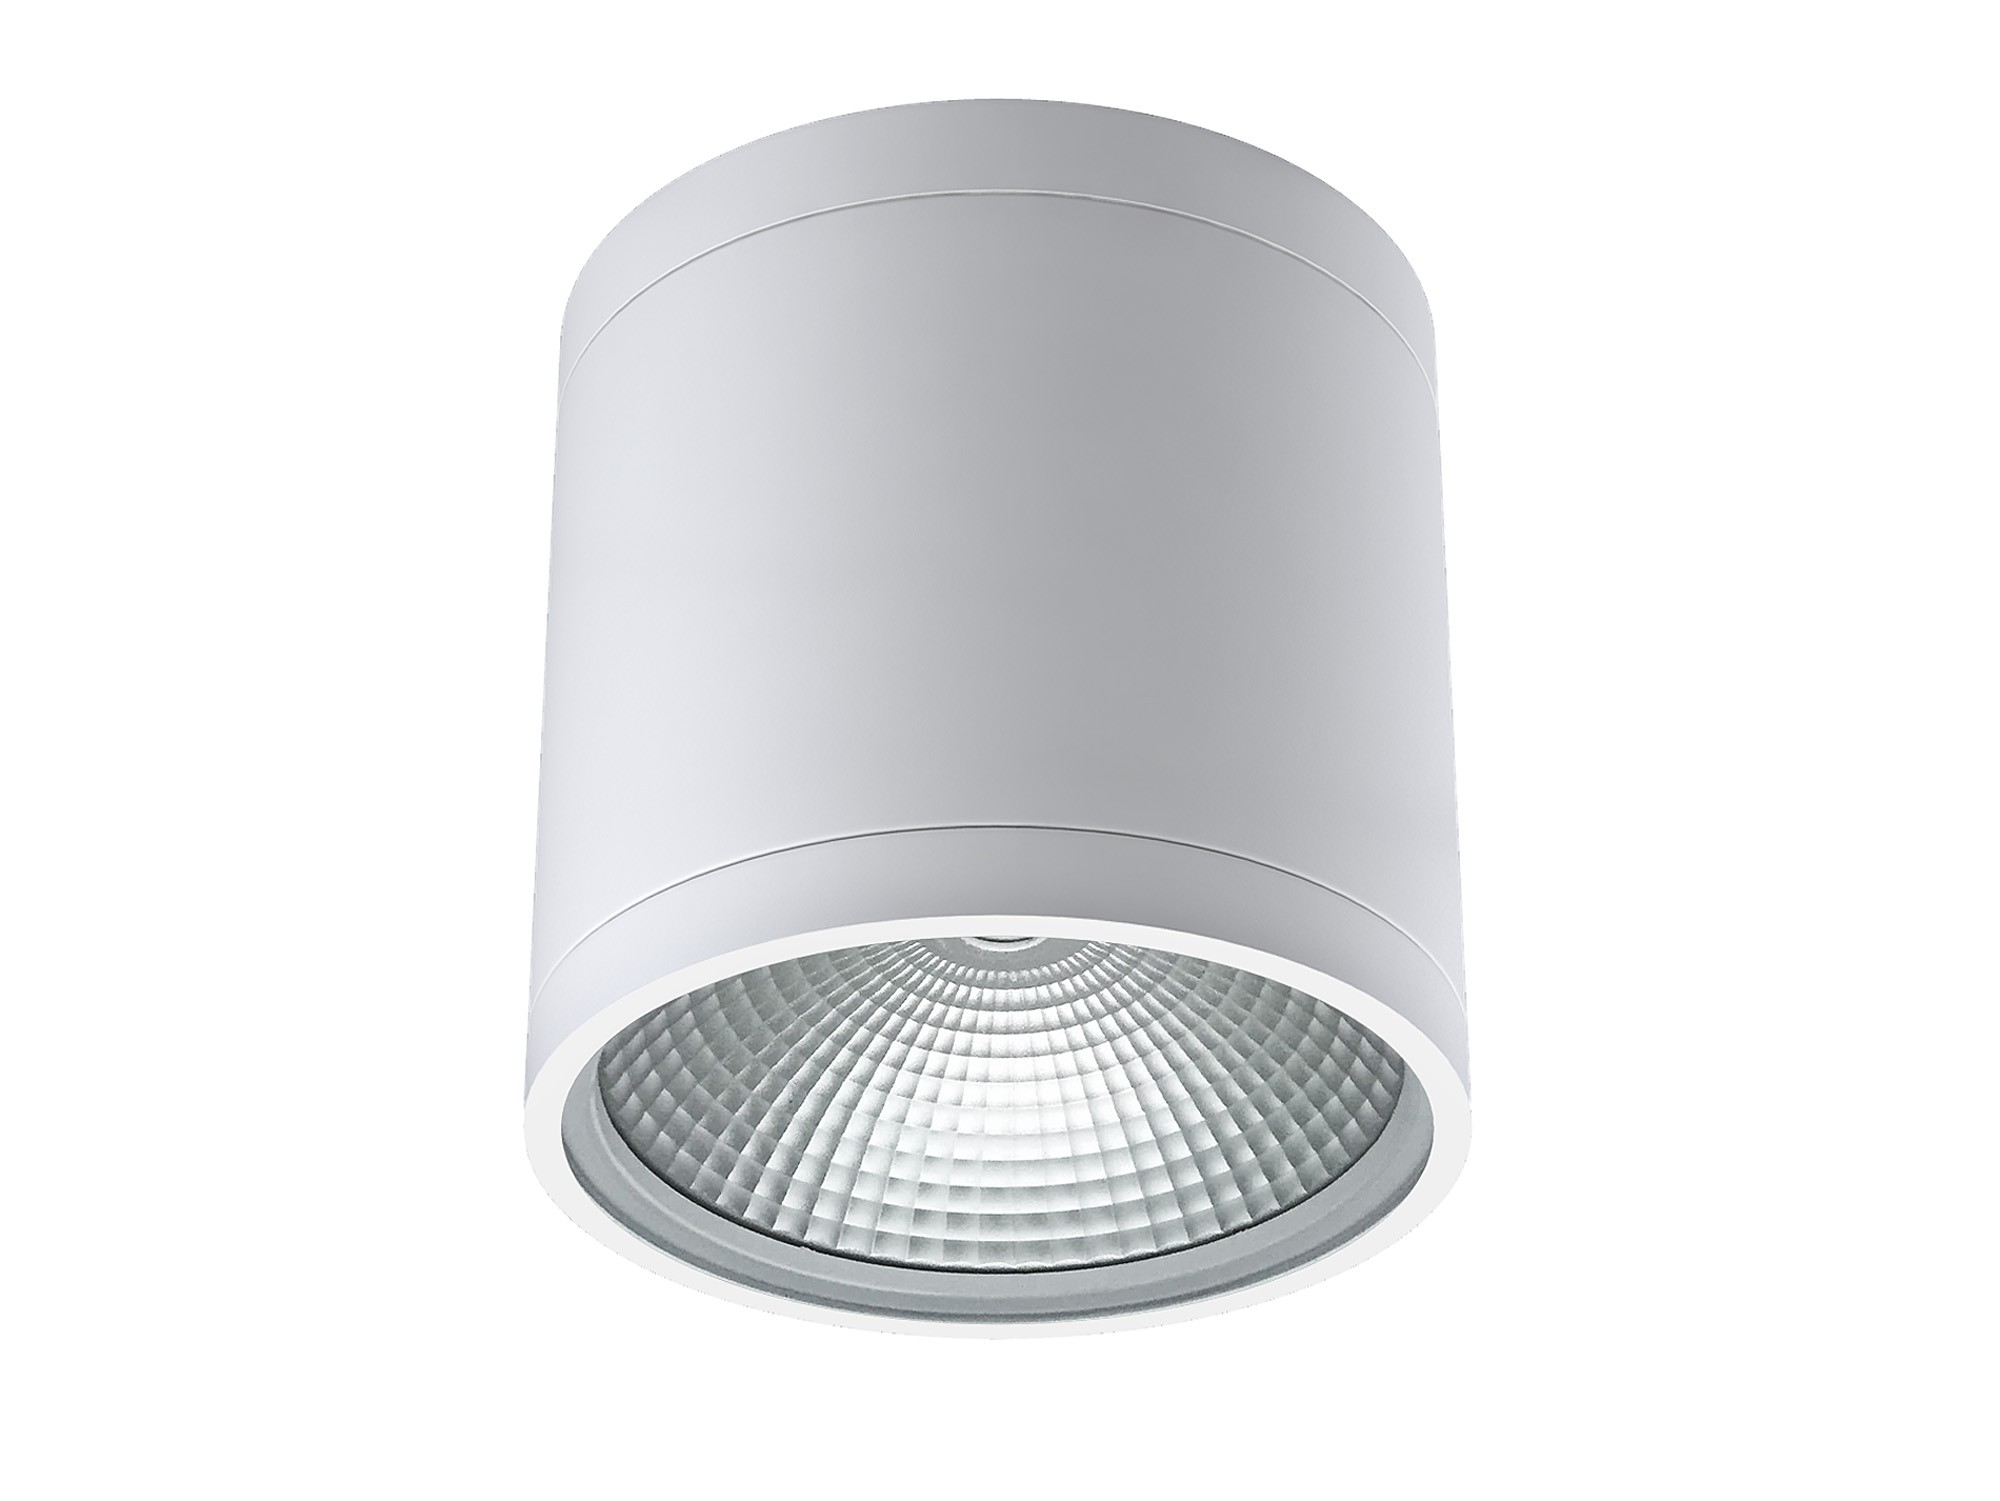 "6"" ROUND CEILING DOWNLIGHT (IP65) - 1000lm/1500lm/2200lm/2600lm"